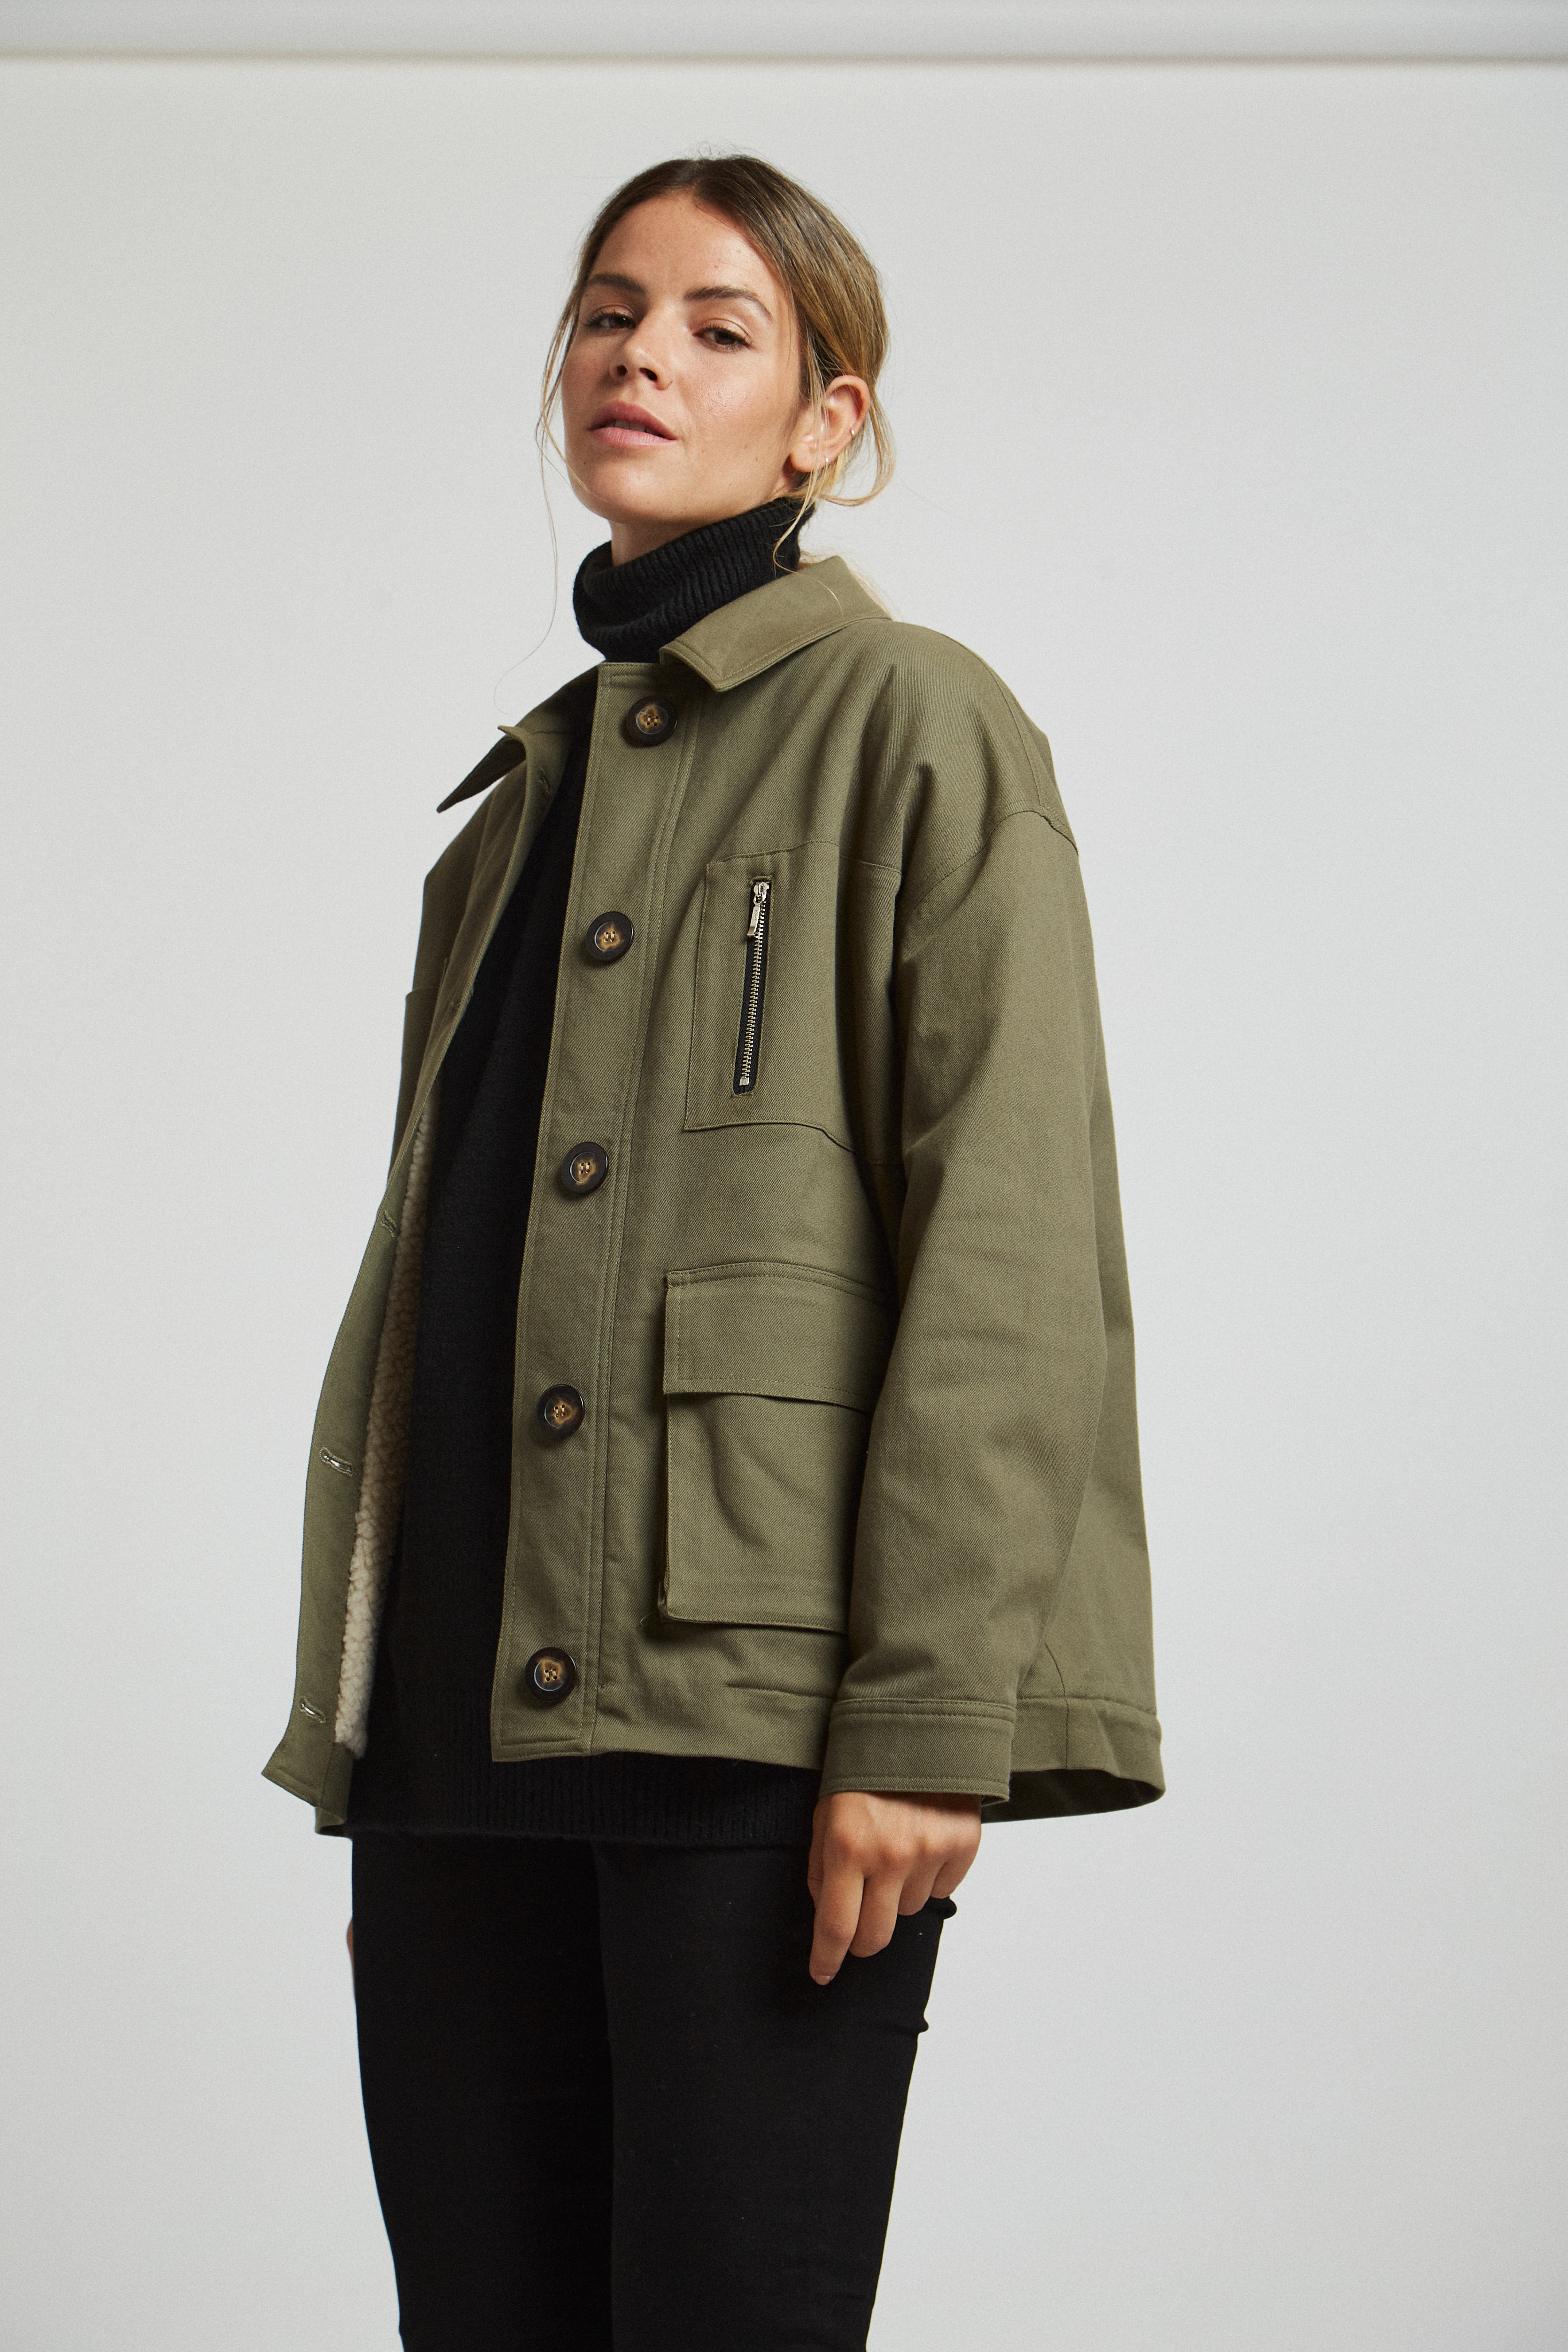 awada_chaqueta-army_47-06-2021__picture-20496